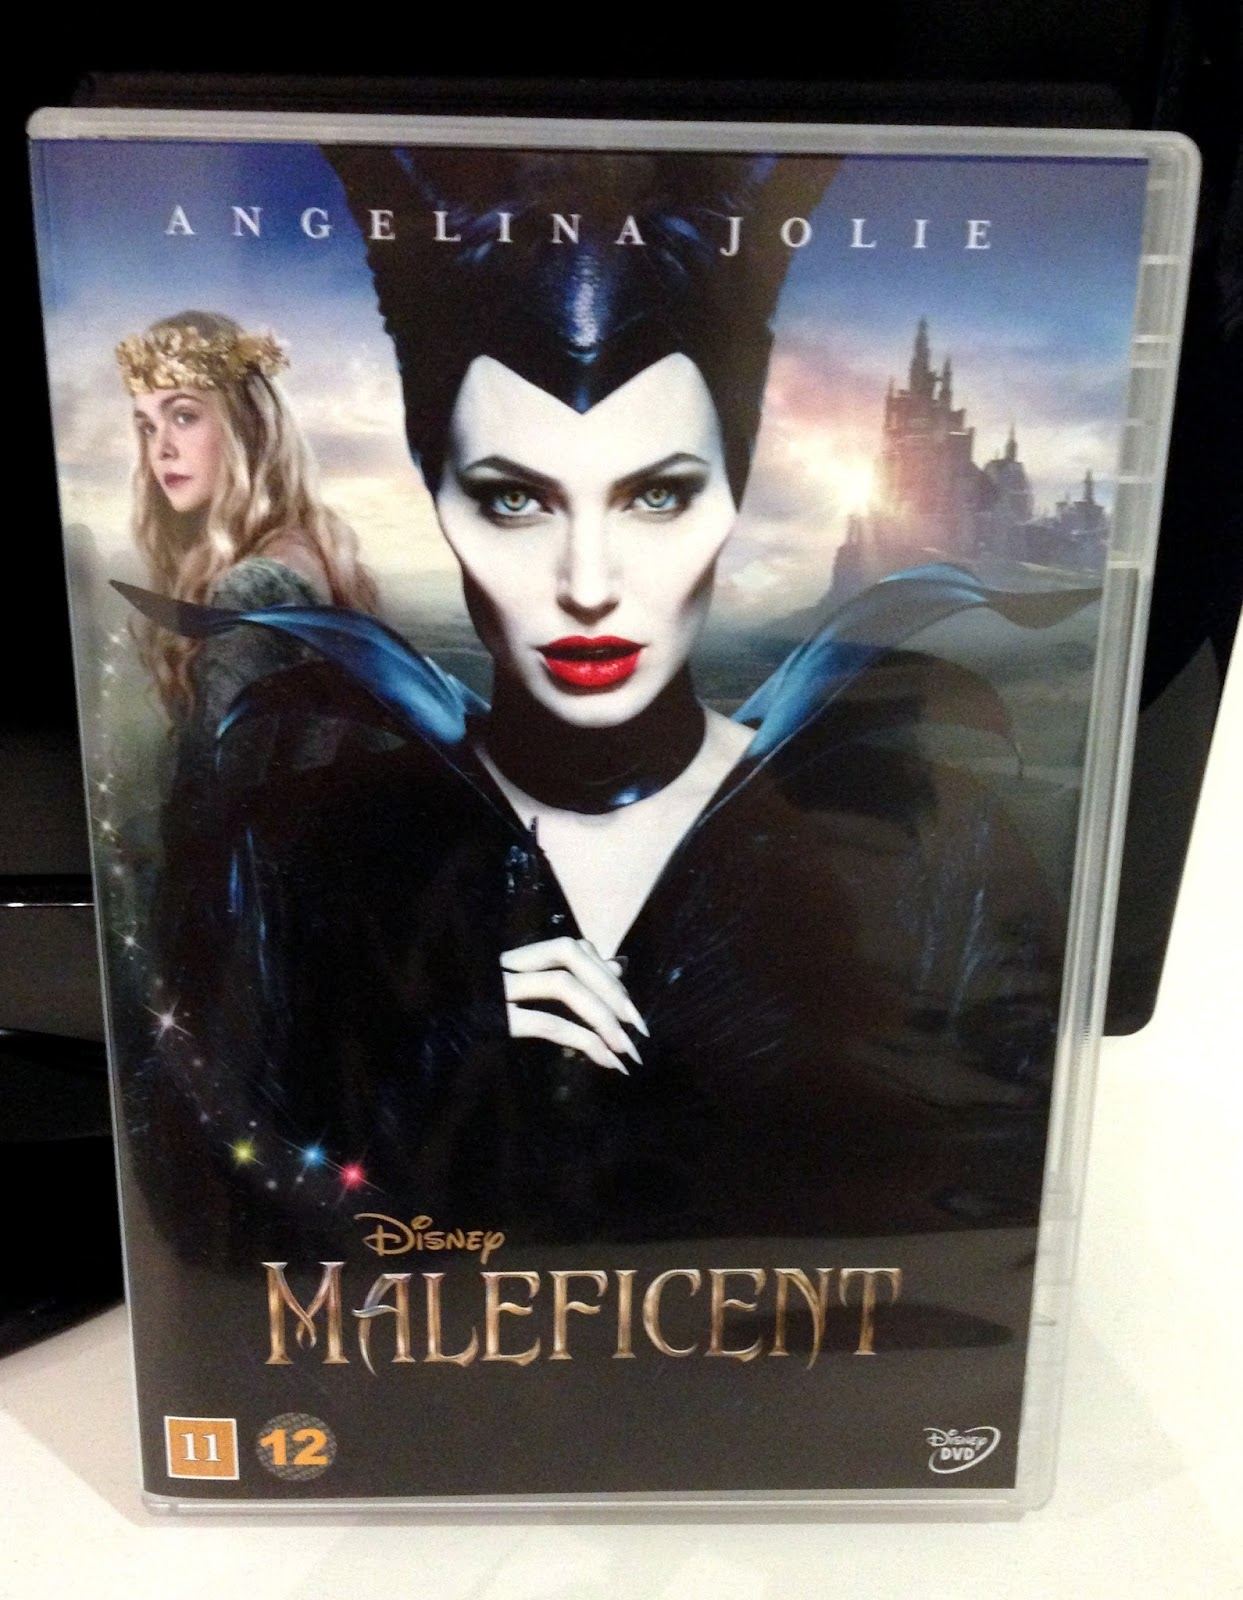 A picture of a dvd movie called Maleficent which disney made and angeline jolie stars in